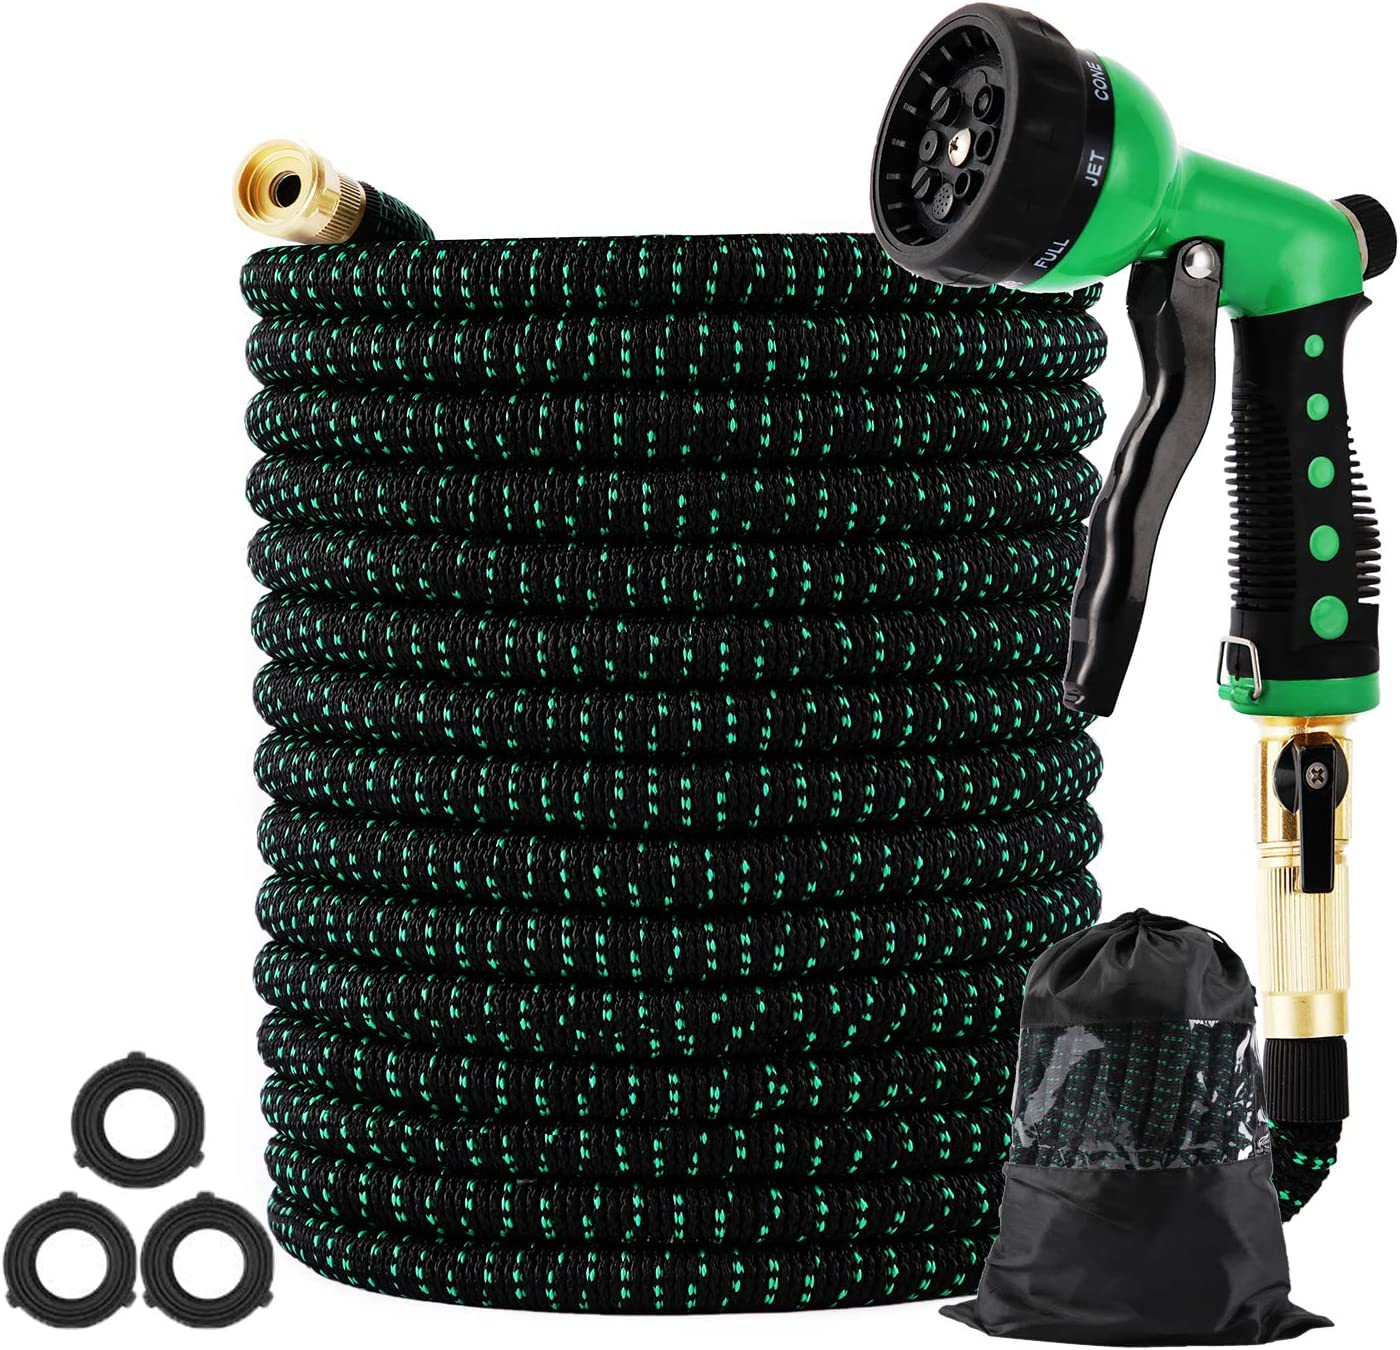 Expandable Garden Hose 150ft Collapsible, Kink Free Retractable Water Hose Pipe Lightweight with 8 Function High Pressure Spray Nozzle,3750D Durable 3 Layers Latex Core with 3/4